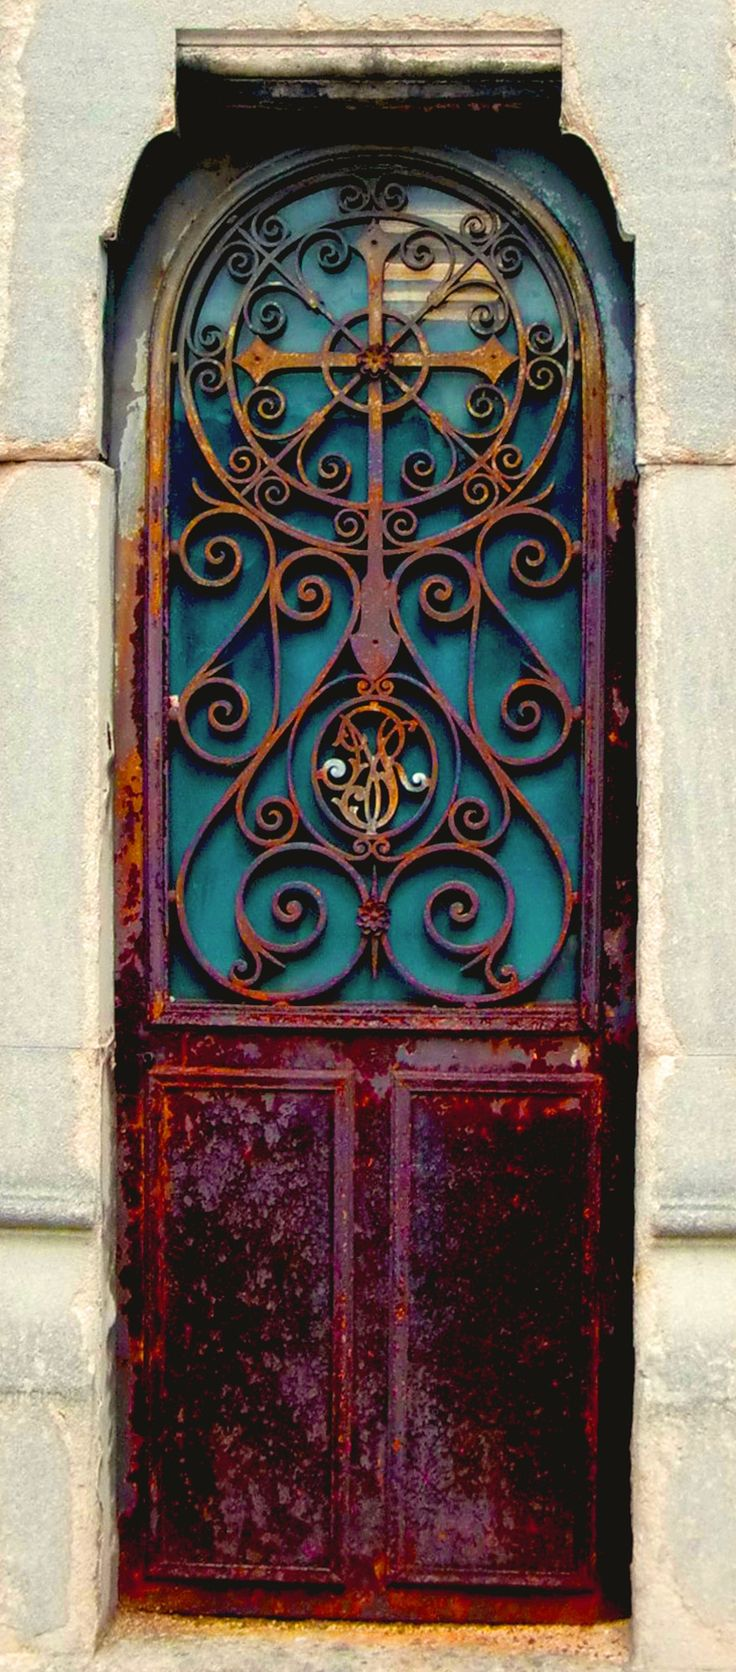 #LGLimitlessDesign & #ContestTextures, colour, tones, shades, enhanced detail- amazing natural beauty rusted scrollwork ....  If you have any questions at all about windows or doors, feel free to contact us - just answers, no sales (unless that's what you're asking for :-)